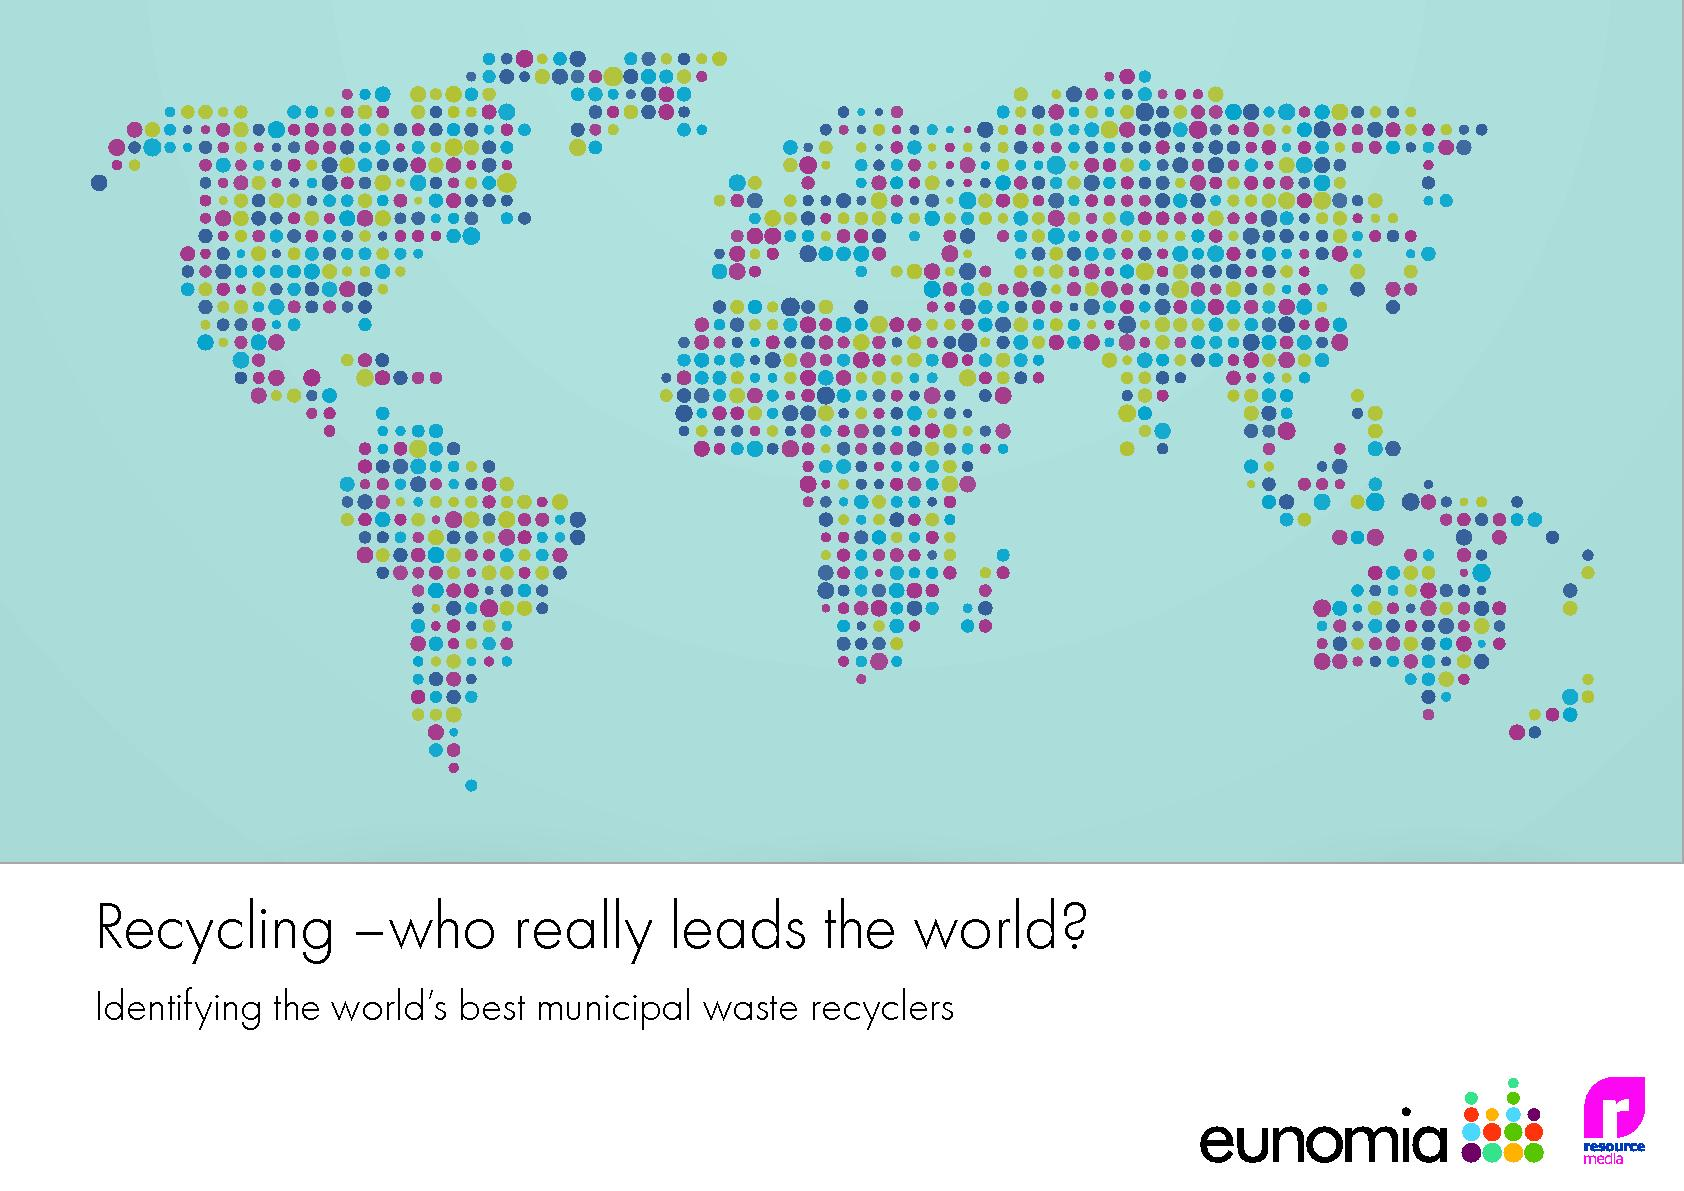 Recycling – Who Really Leads the World? - Eunomia